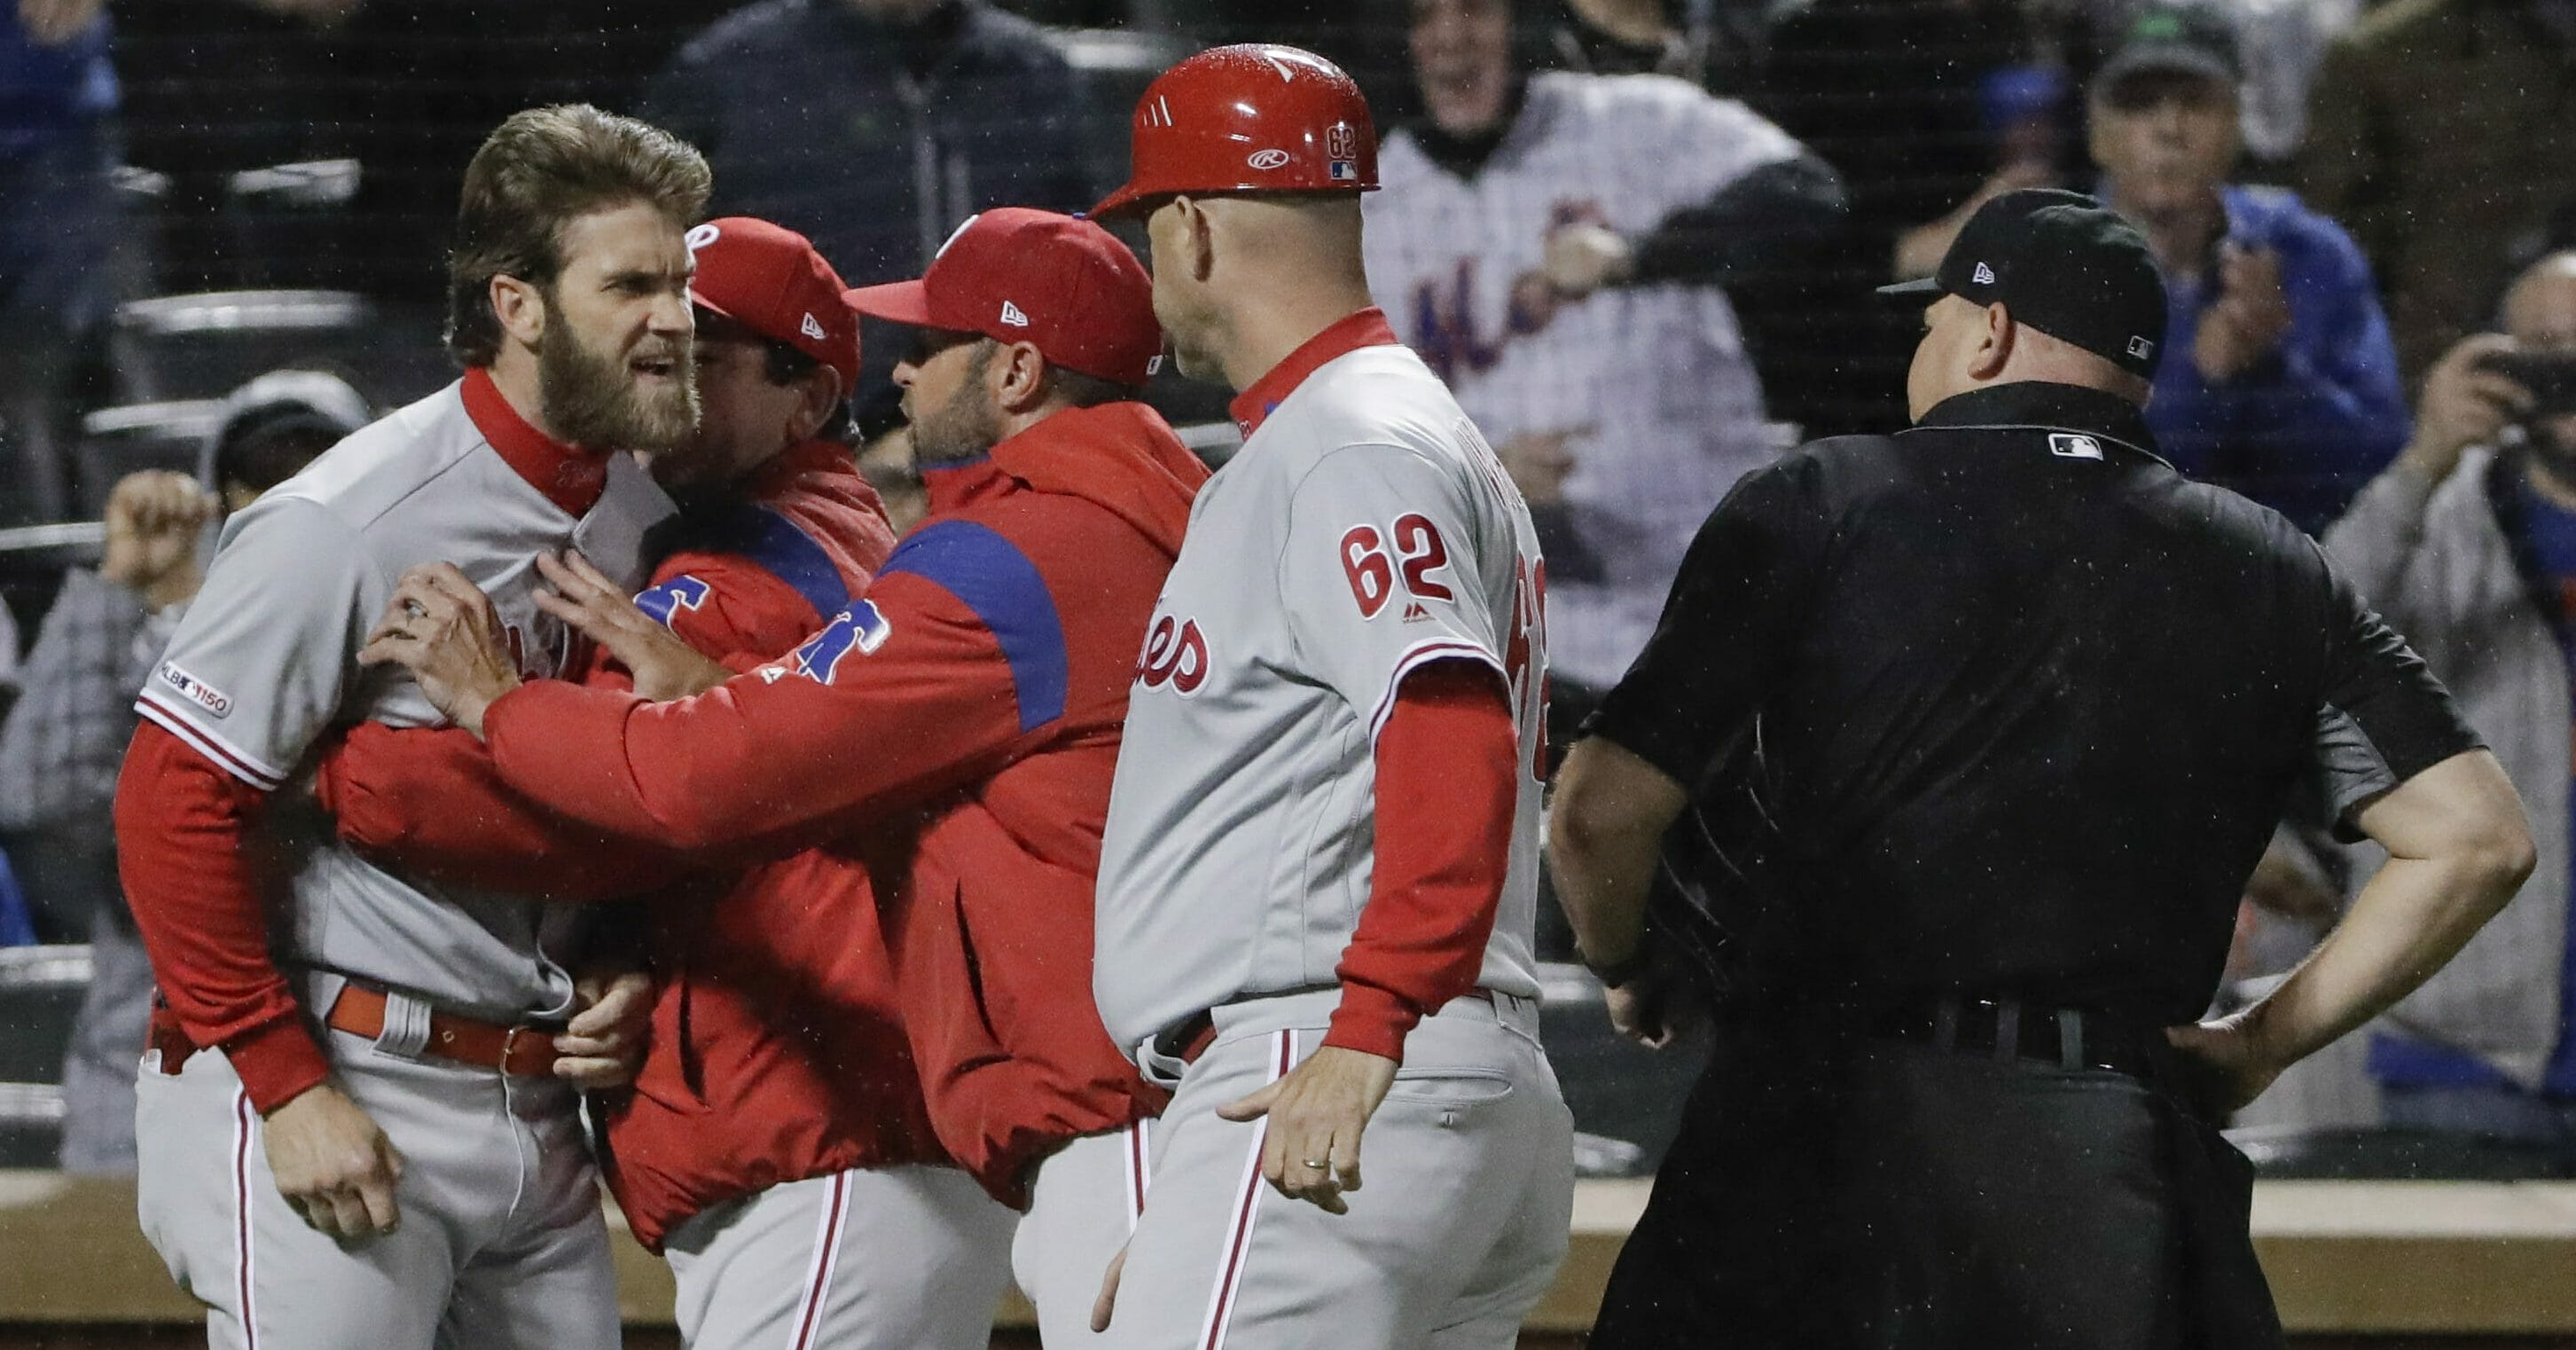 The Philadelphia Phillies' Bryce Harper, left, is restrained while arguing with umpire Mark Carlson, right.